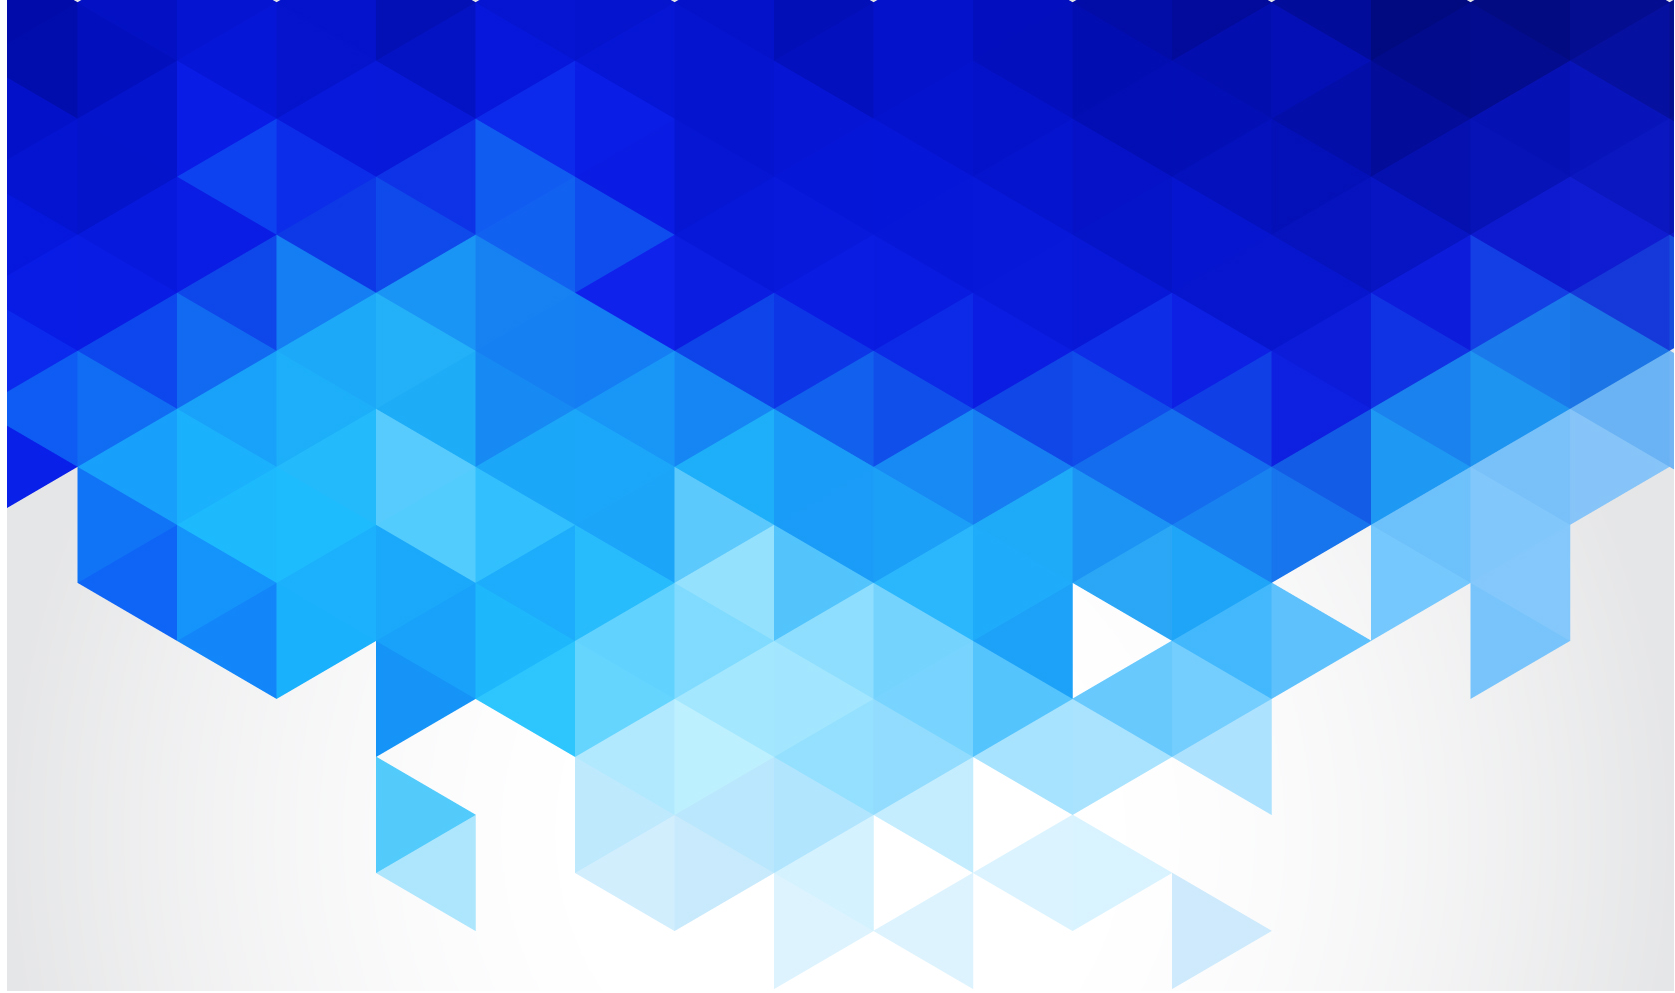 http://www.techforjustice.org/wp-content/uploads/2015/10/geometric-background.png